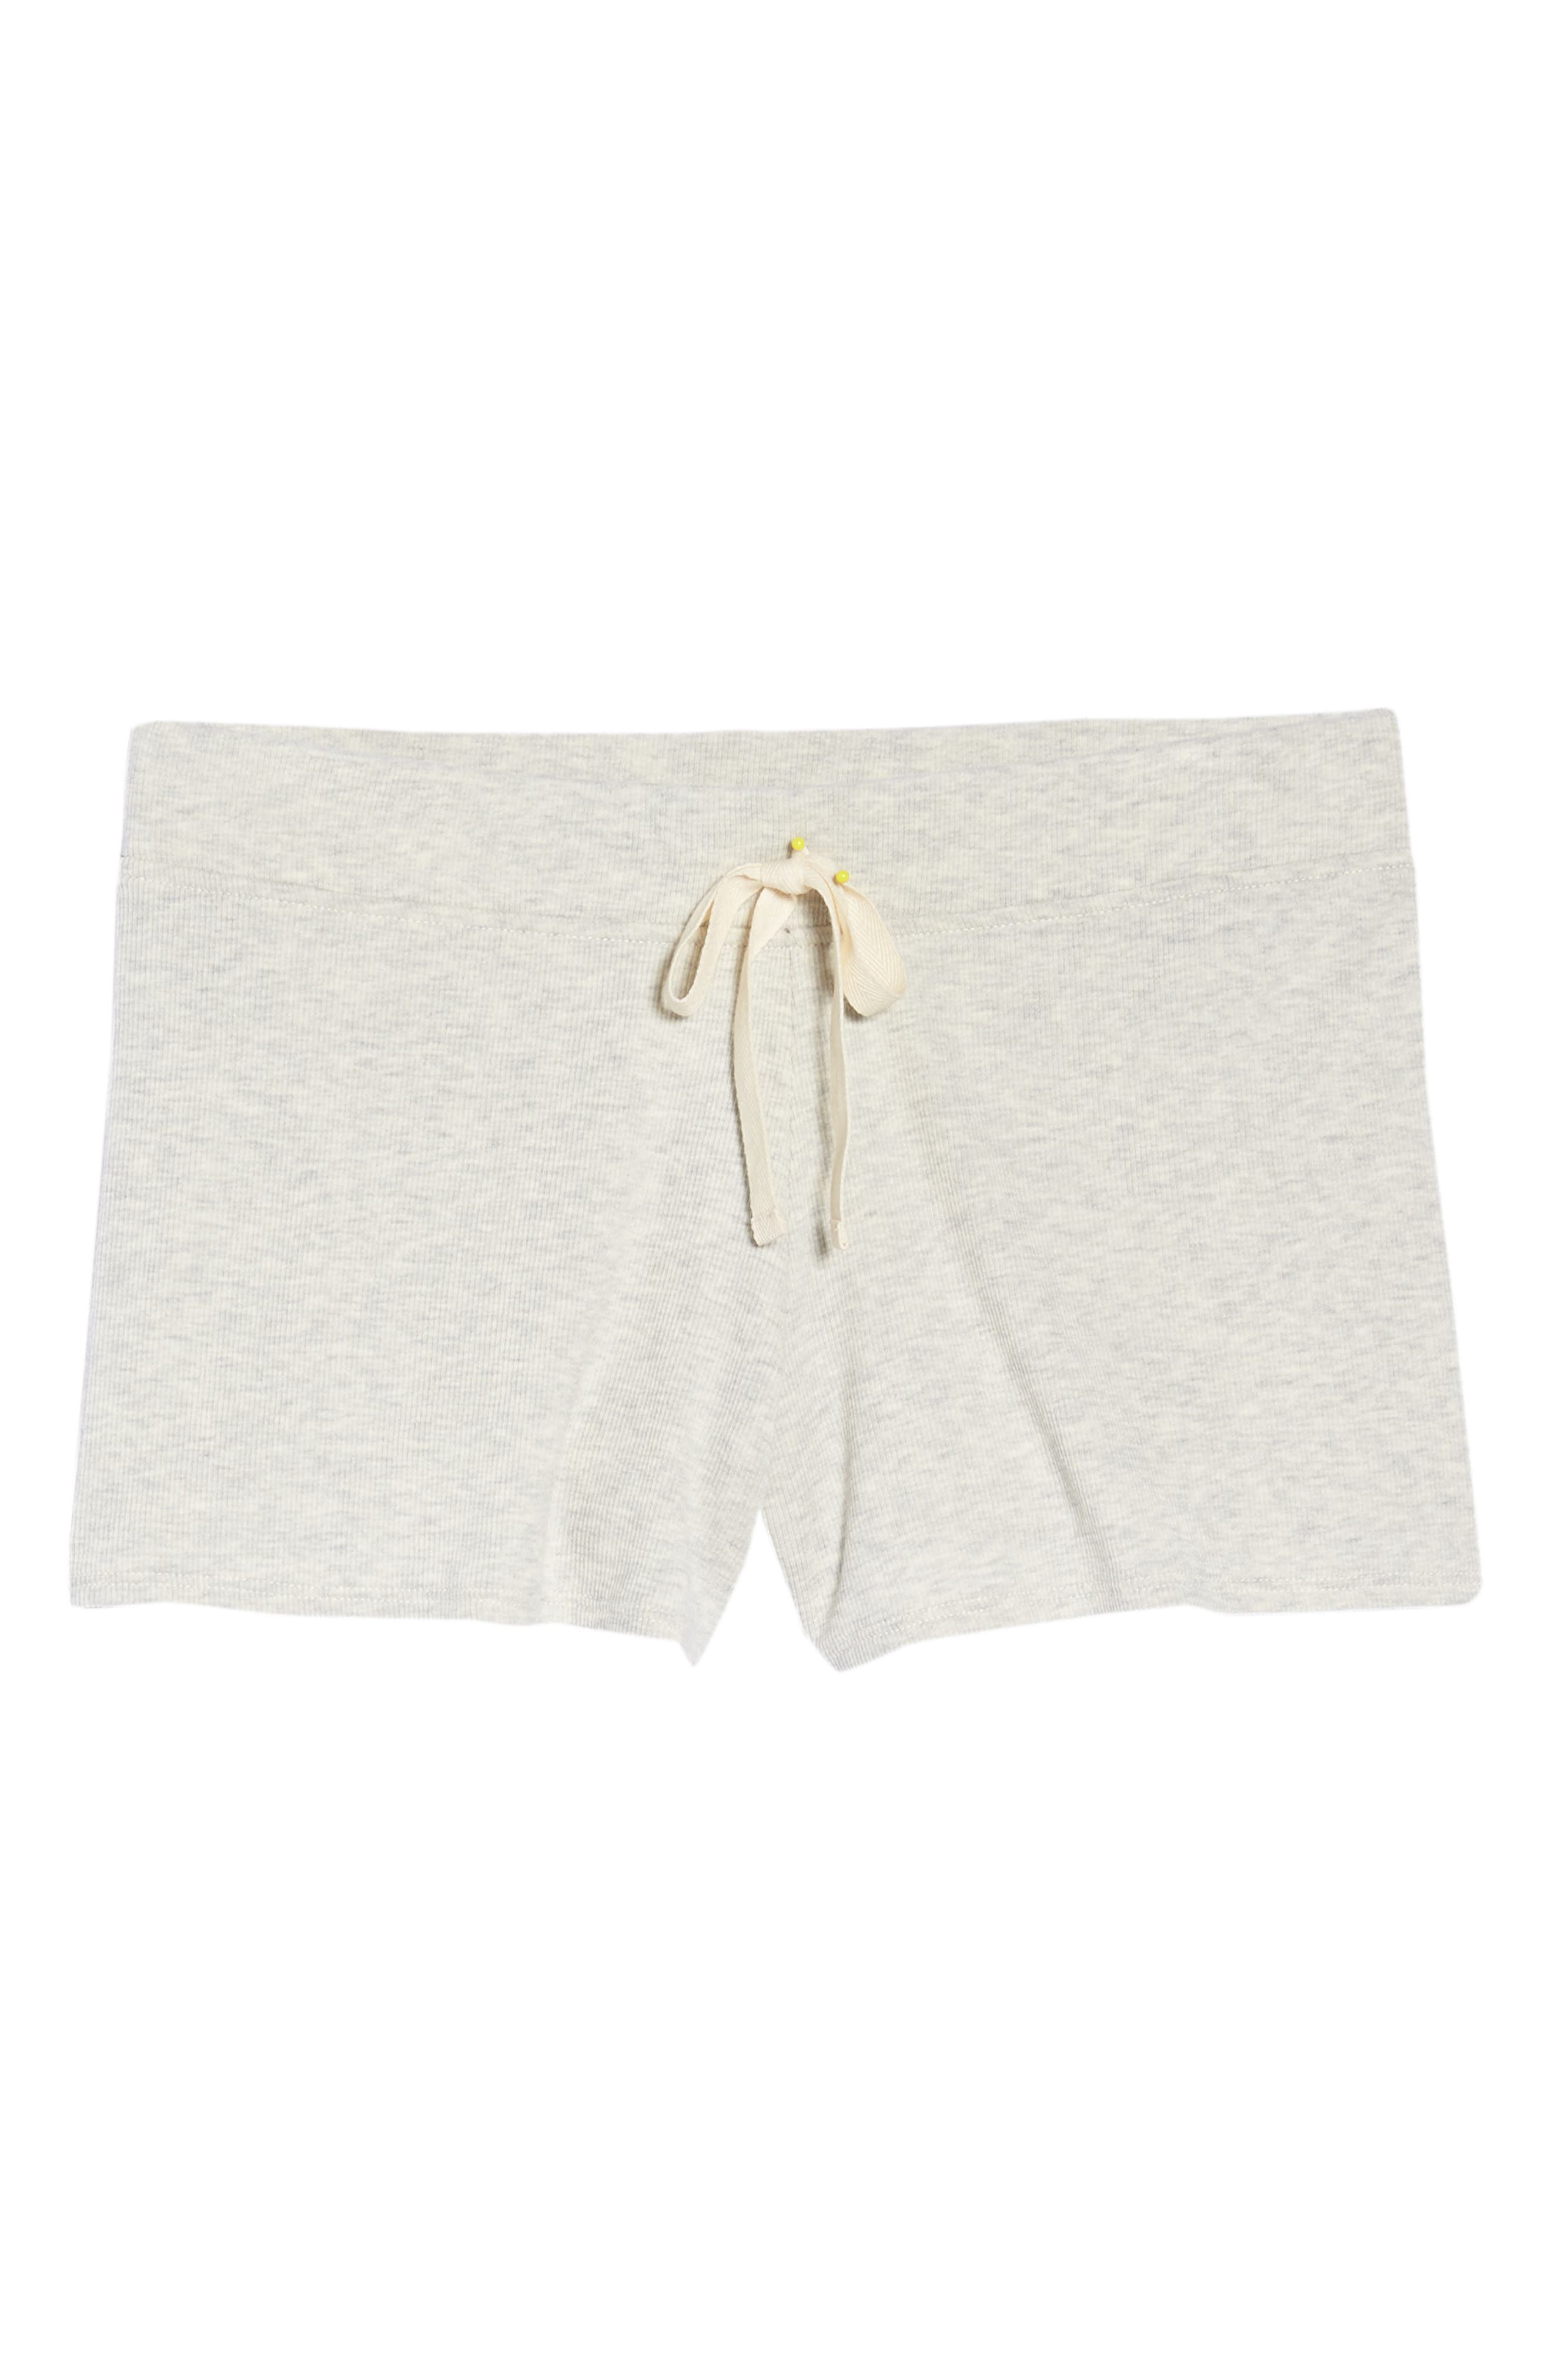 Daydream Lounge Shorts,                             Alternate thumbnail 6, color,                             061